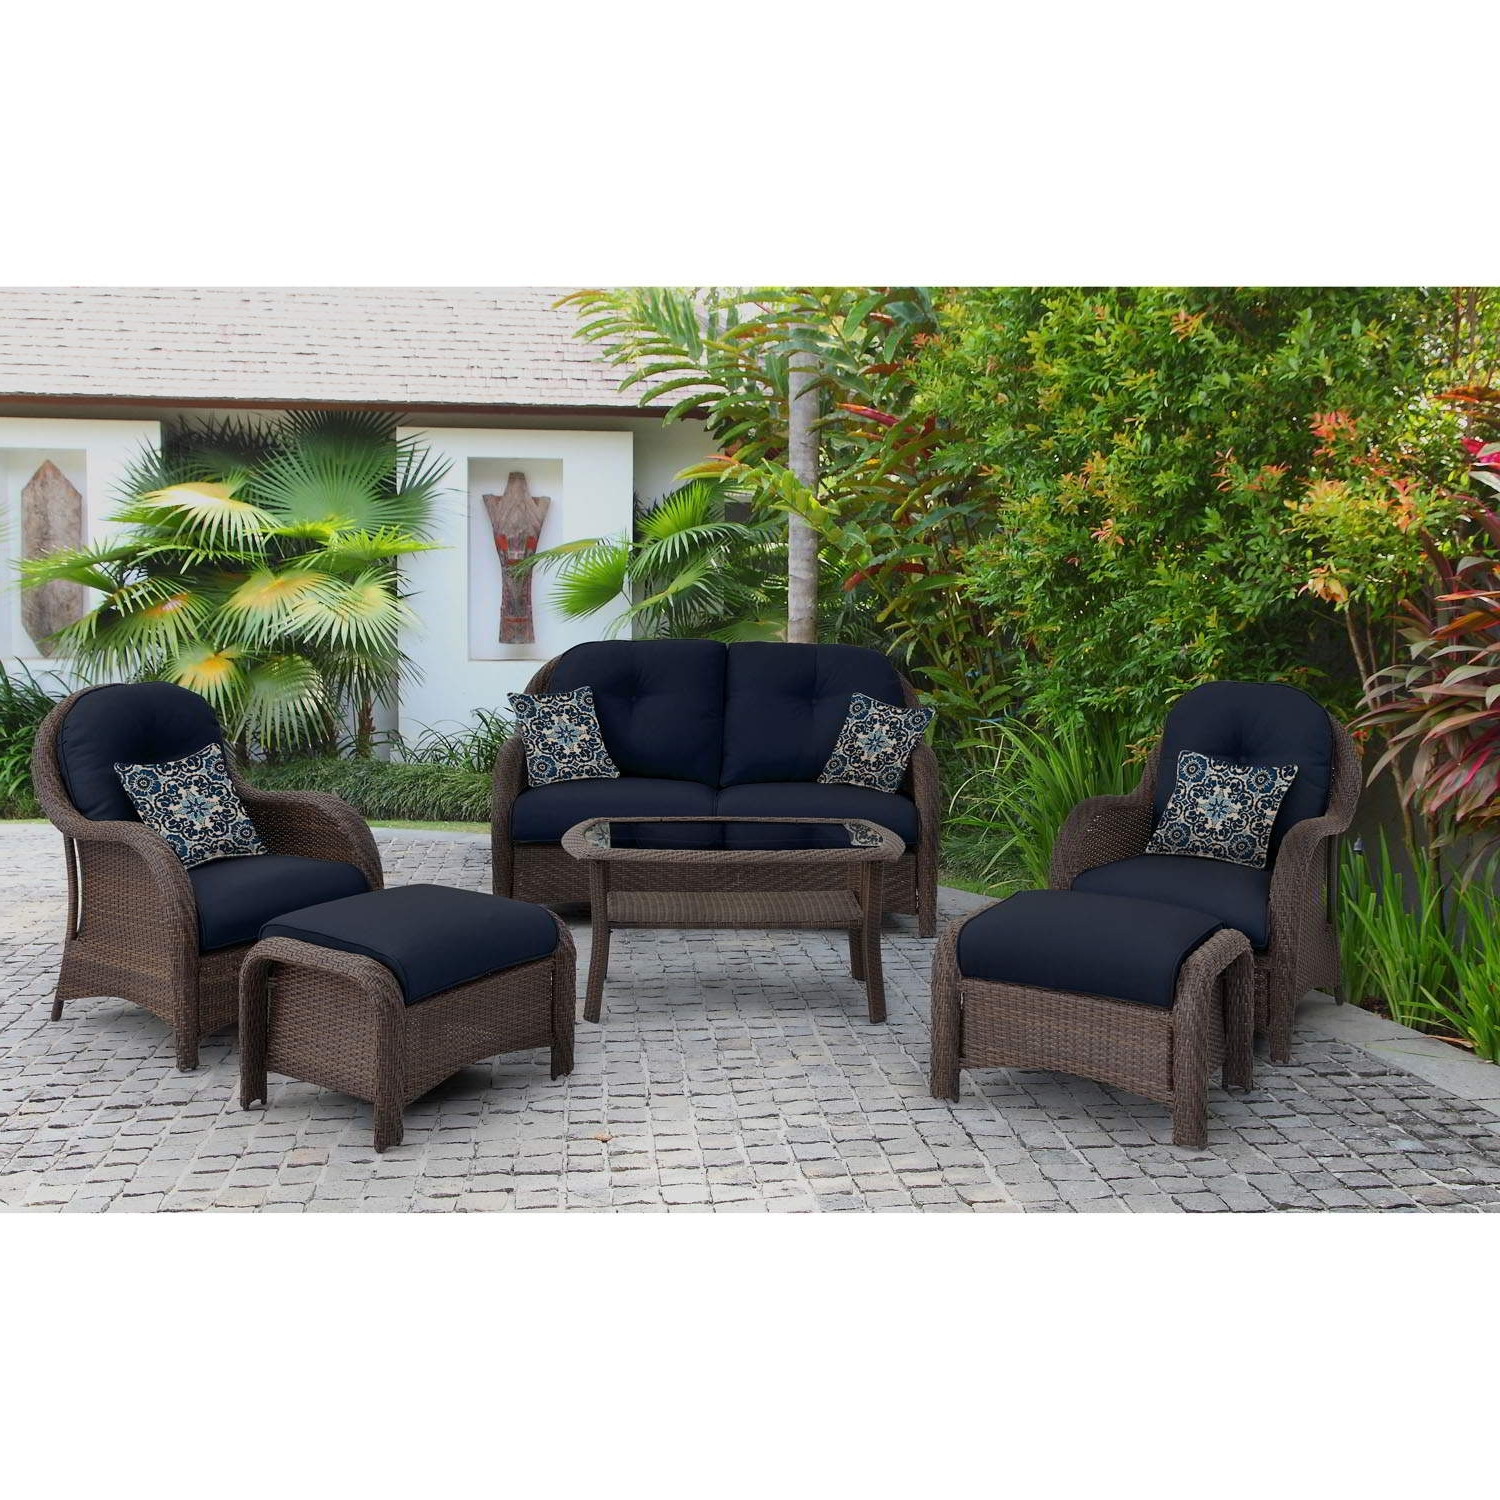 Blue Patio Conversation Sets Regarding Recent Patio : Blue Outdoor And Patio Furniture Bellacor Set Awesome Image (View 11 of 20)